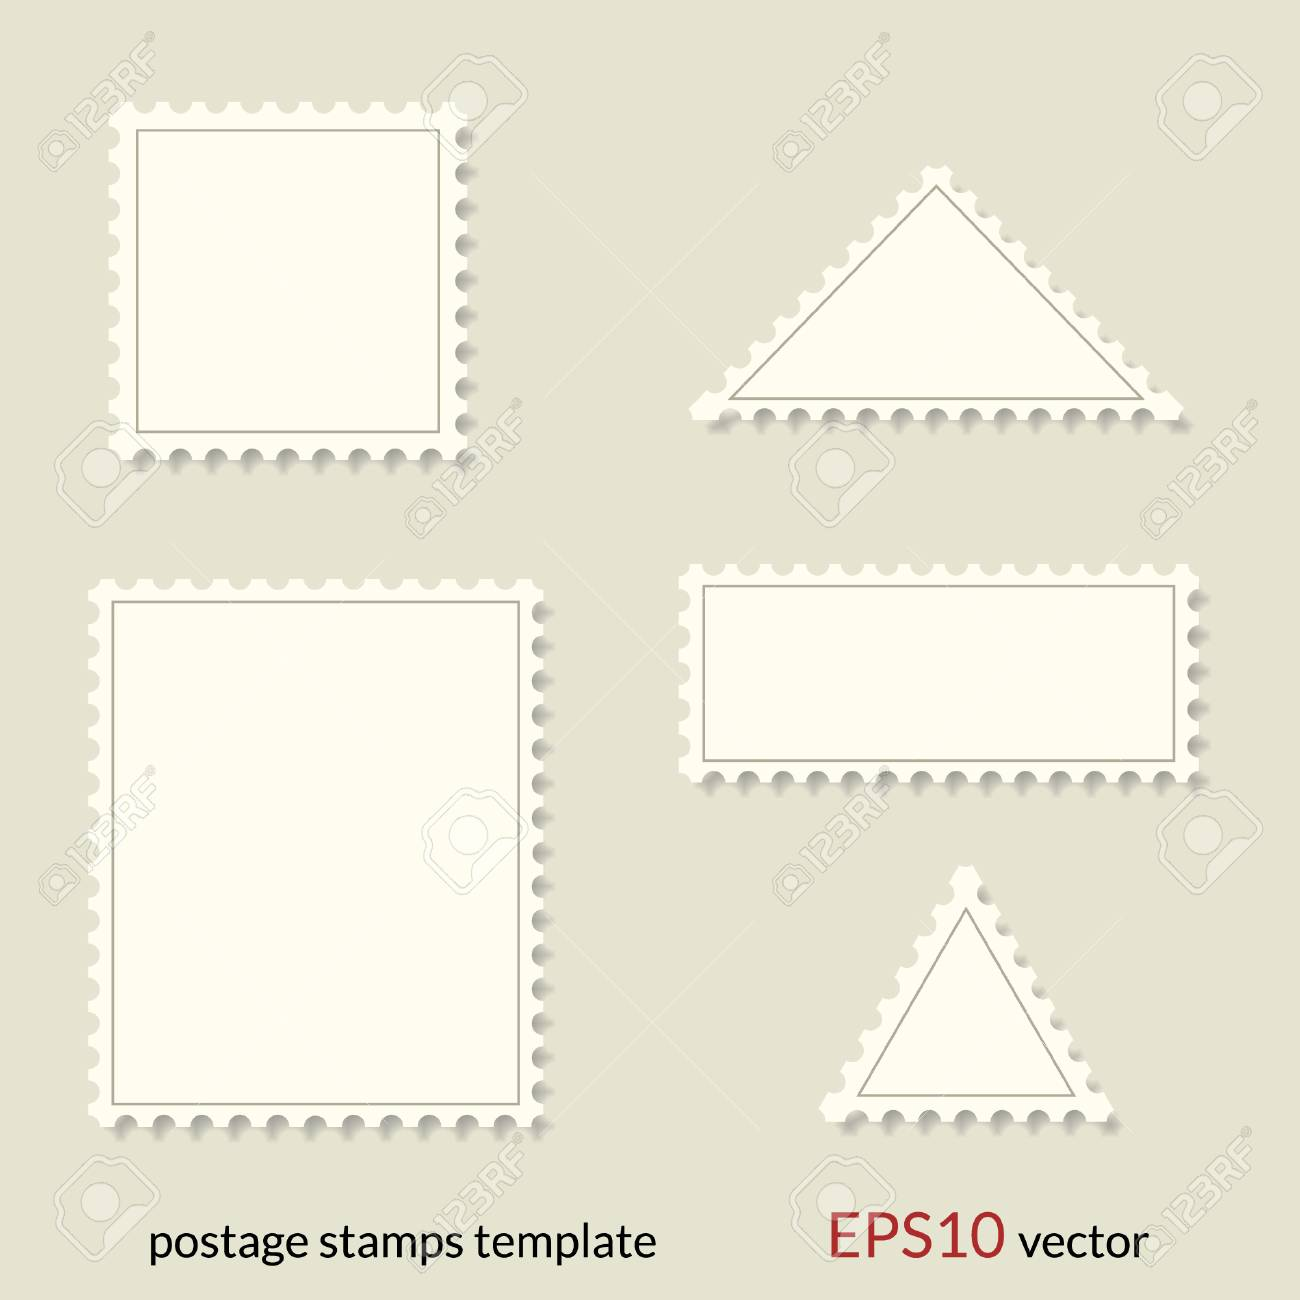 postage stamp template royalty free cliparts vectors and stock